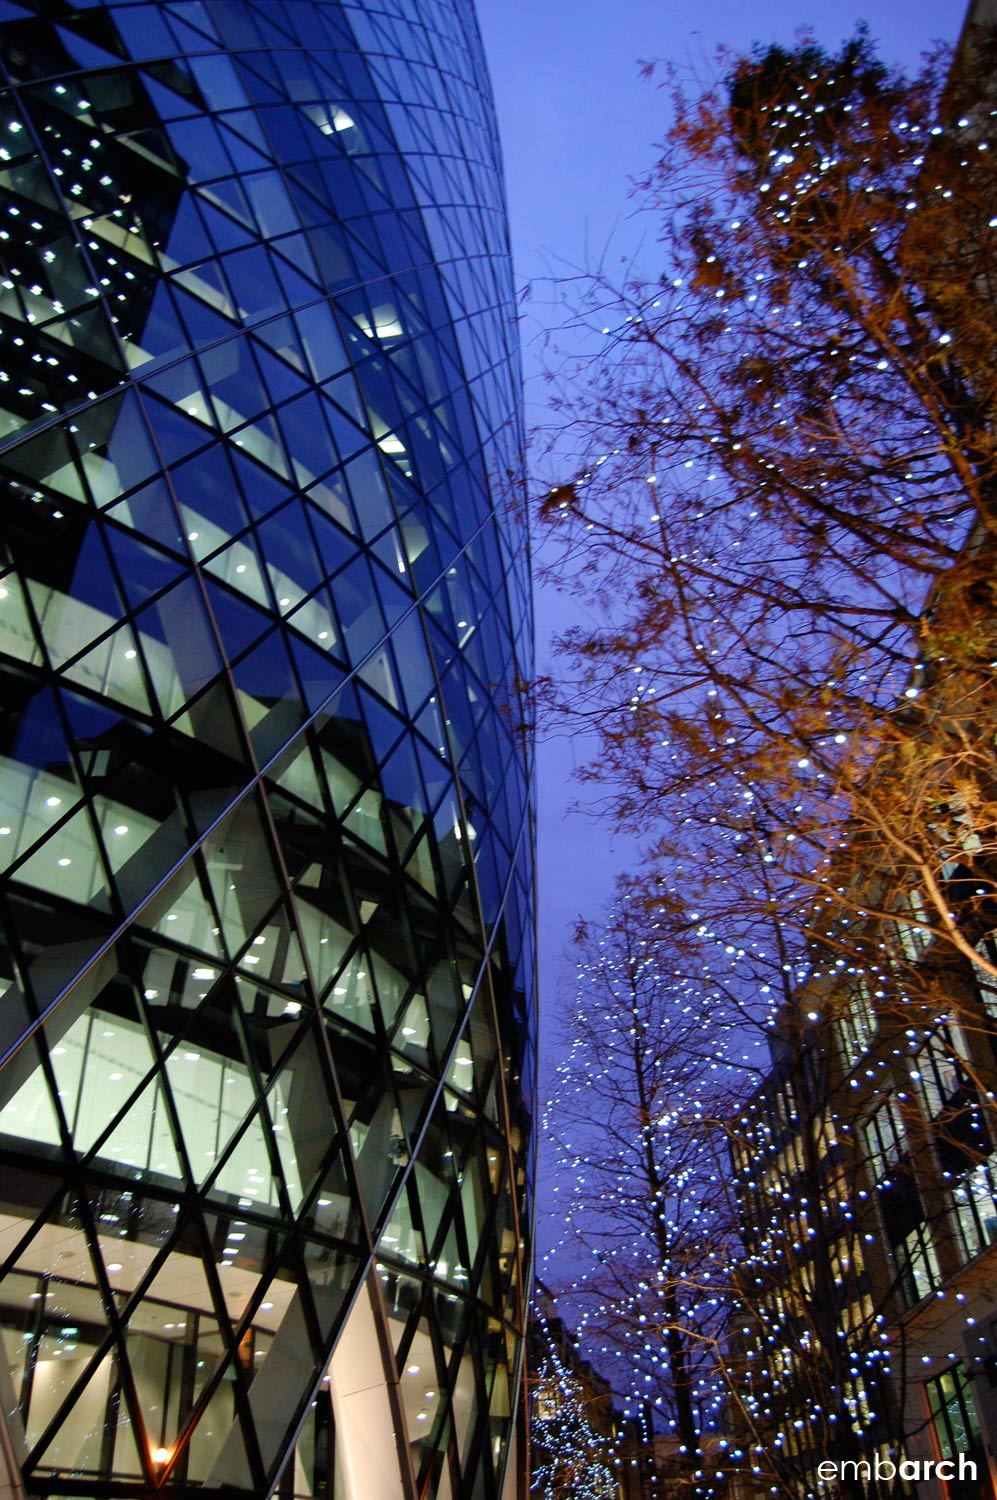 30 St. Mary's Axe - exterior at night